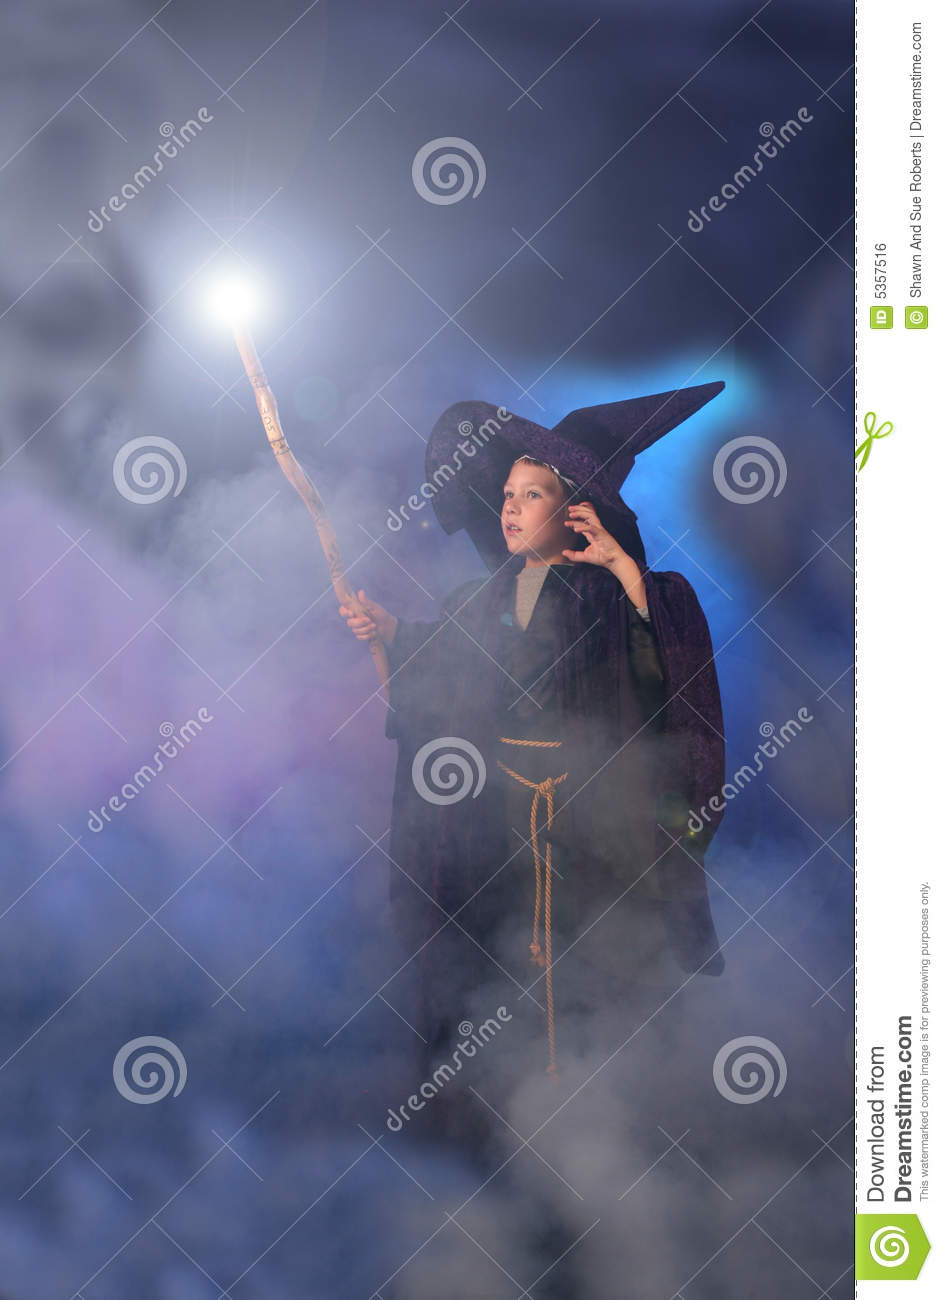 Magical Child In Wizard Costume Royalty Free Stock Image - Image ...